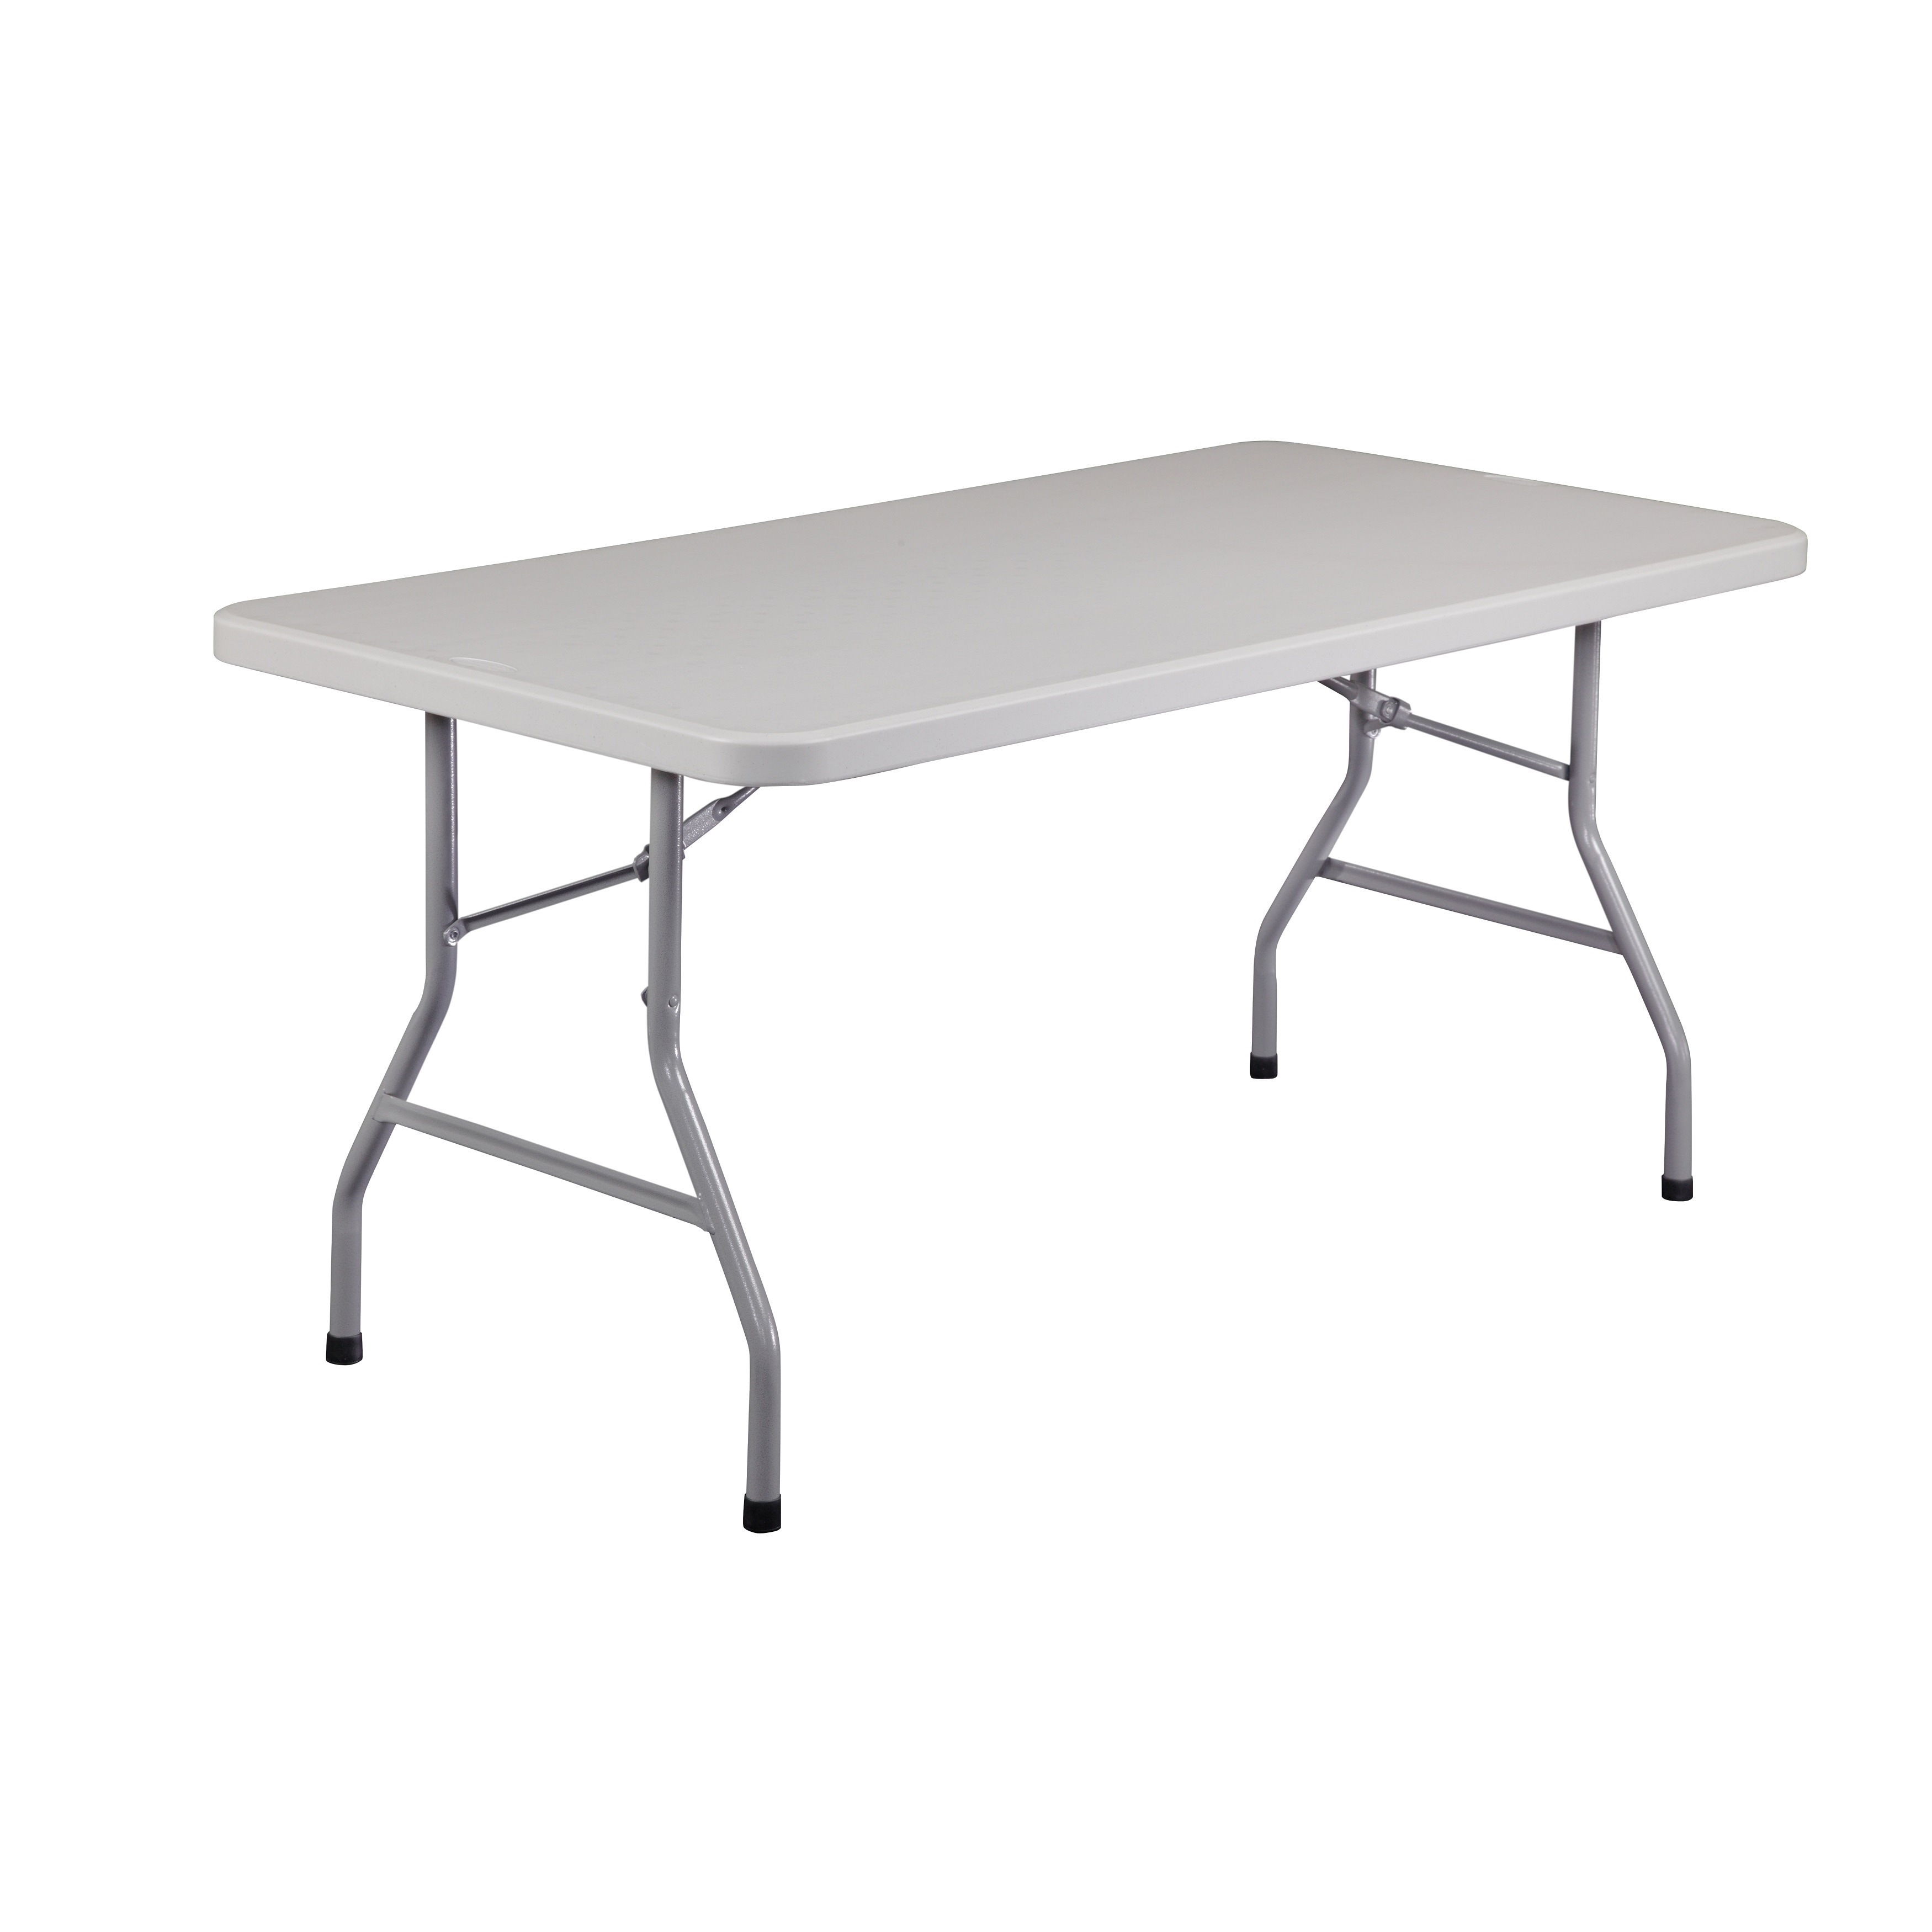 Plastic Folding Table 30 X 60 20 Pack On Free Shipping Today 11137949